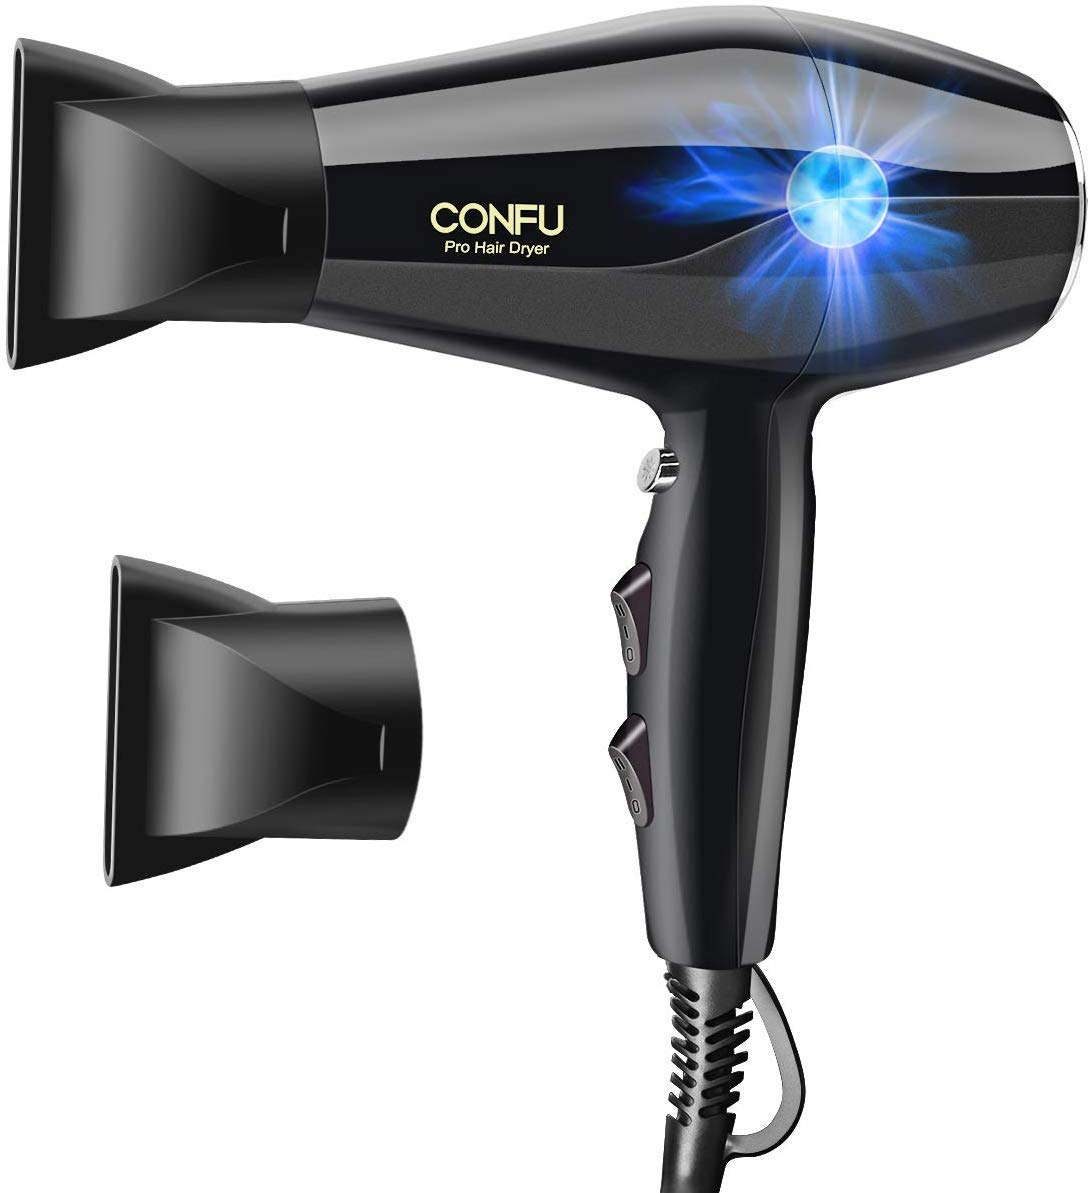 Professional Ionic Salon Hair Dryer, CONFU 1875 Watt Negative Ion Fast Drying Blow Dryer, Ceramic Tourmaline AC Motor Hairdryer with 2 Concentrator Nozzles - Hair Styling and Drying Tool by CONFU